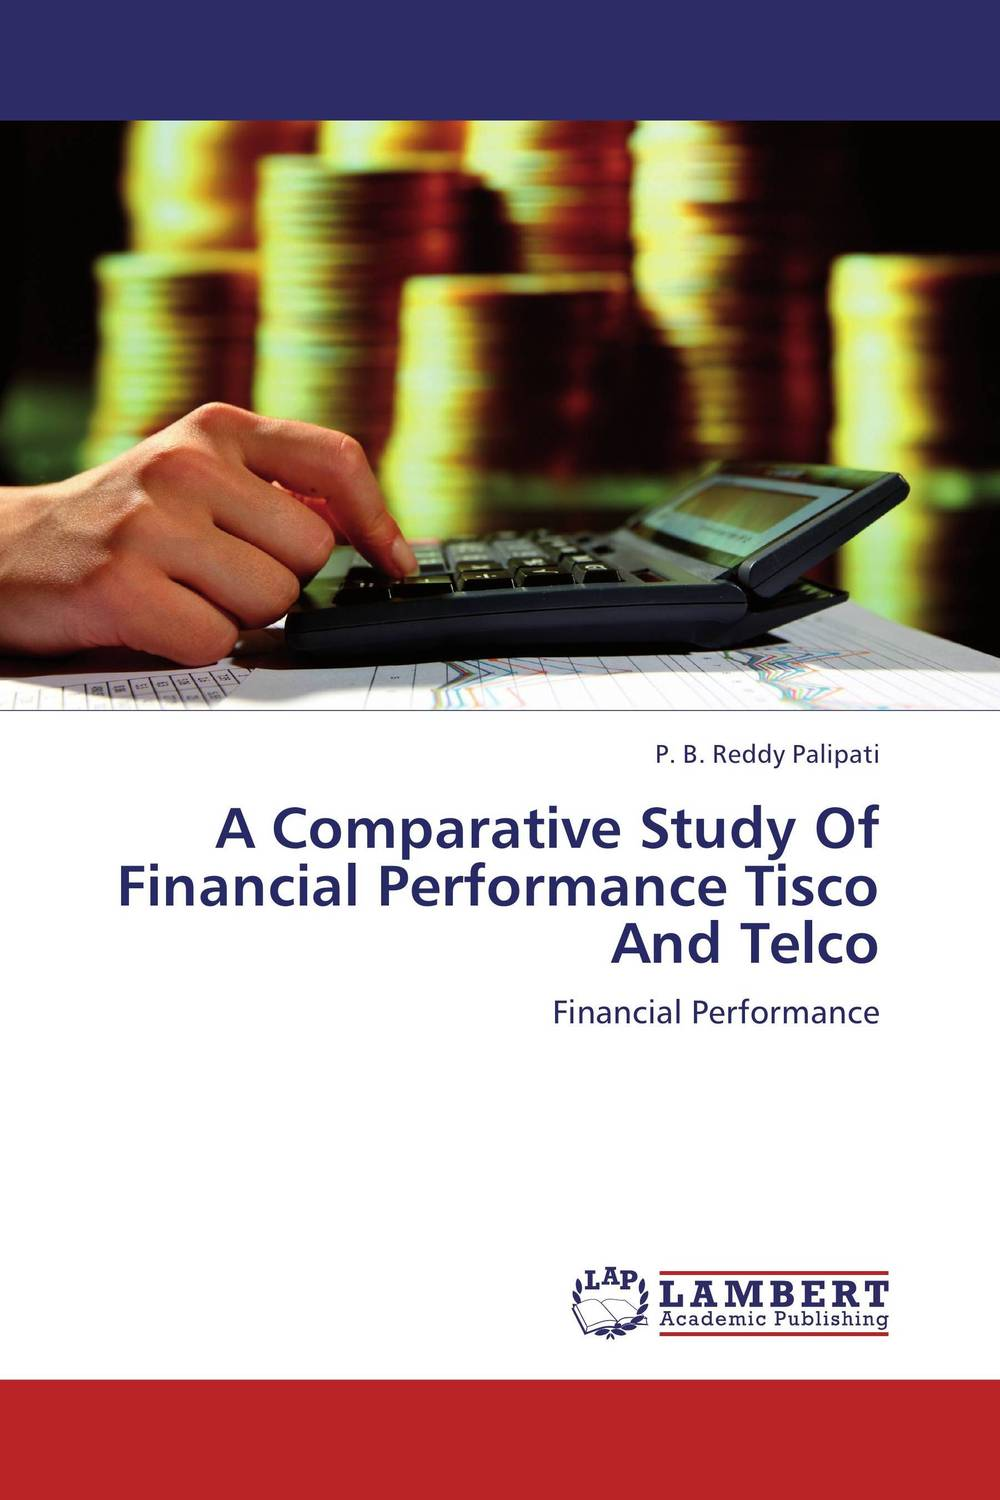 A Comparative Study Of Financial Performance Tisco And Telco a study of the religio political thought of abdurrahman wahid